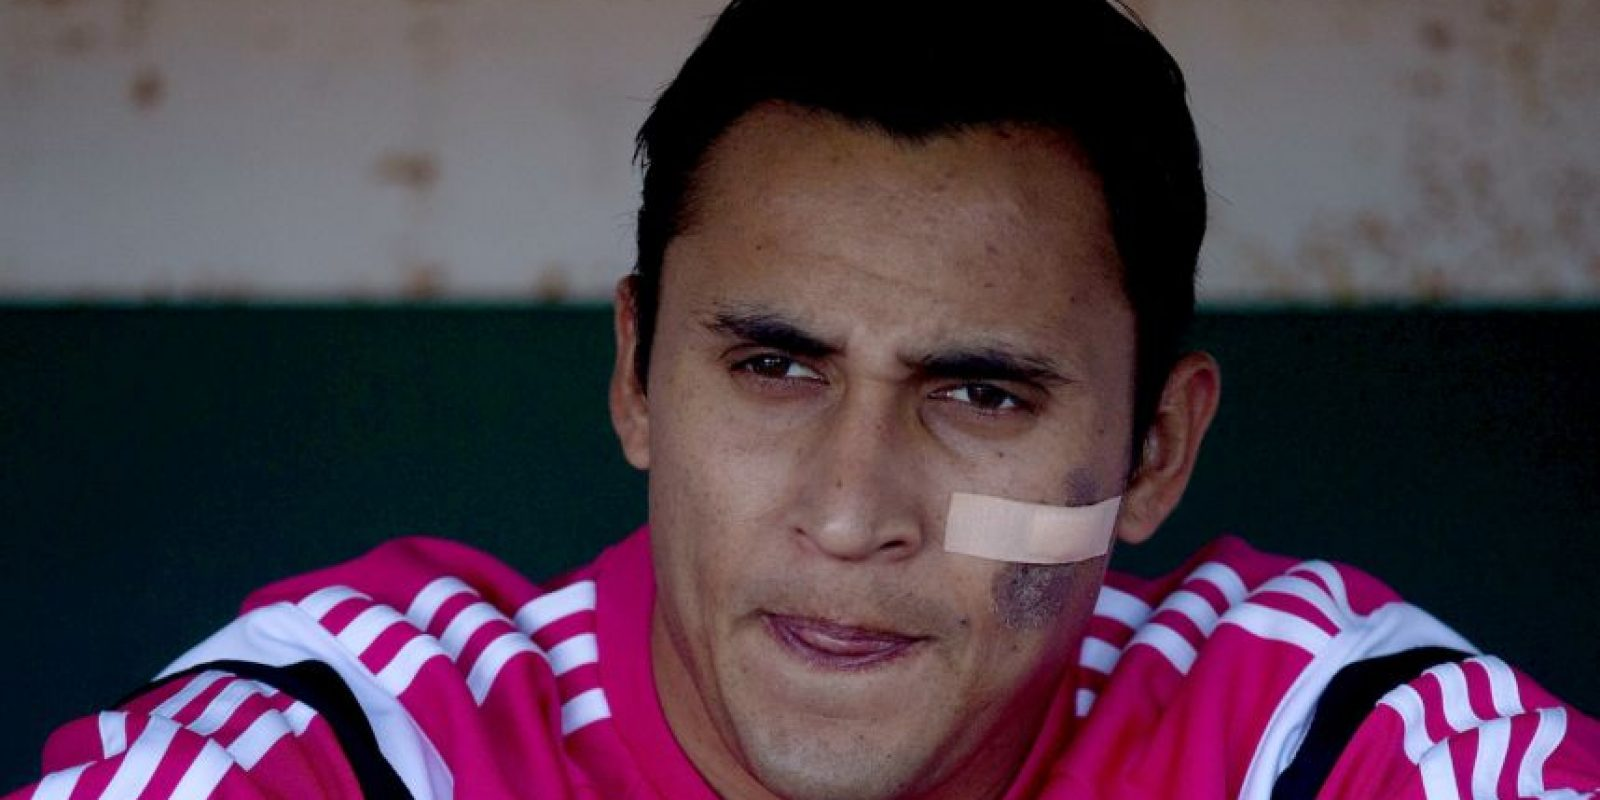 Keylor Navas Foto: Getty Images